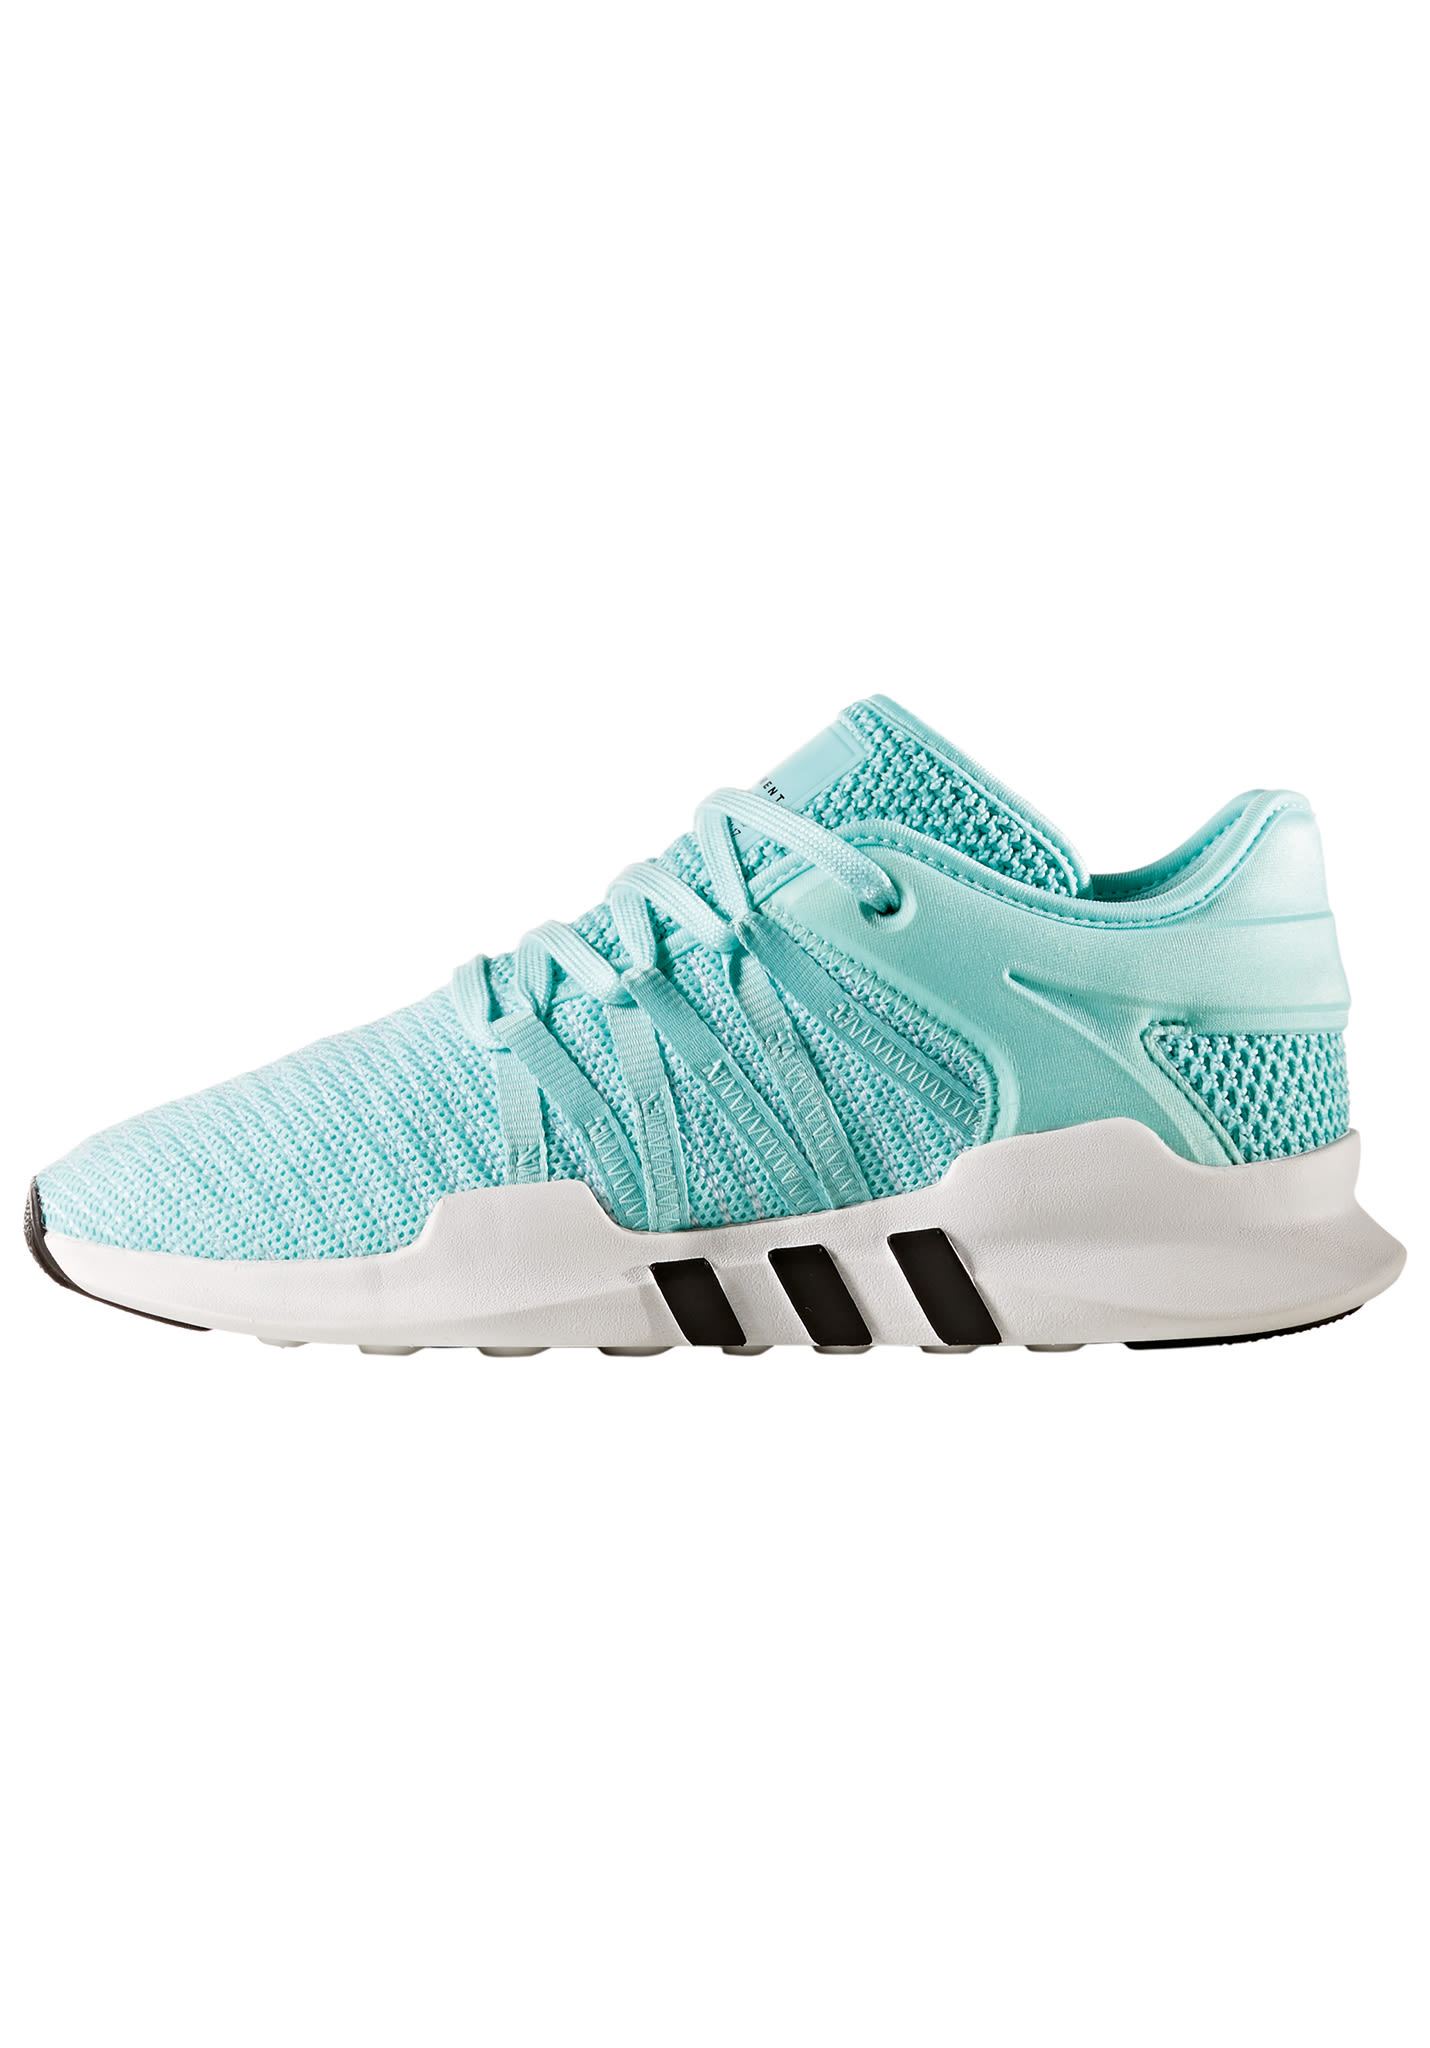 ADIDAS ORIGINALS Eqt Racing Adv - Sneakers for Women - Green - Planet Sports cea11fcdb